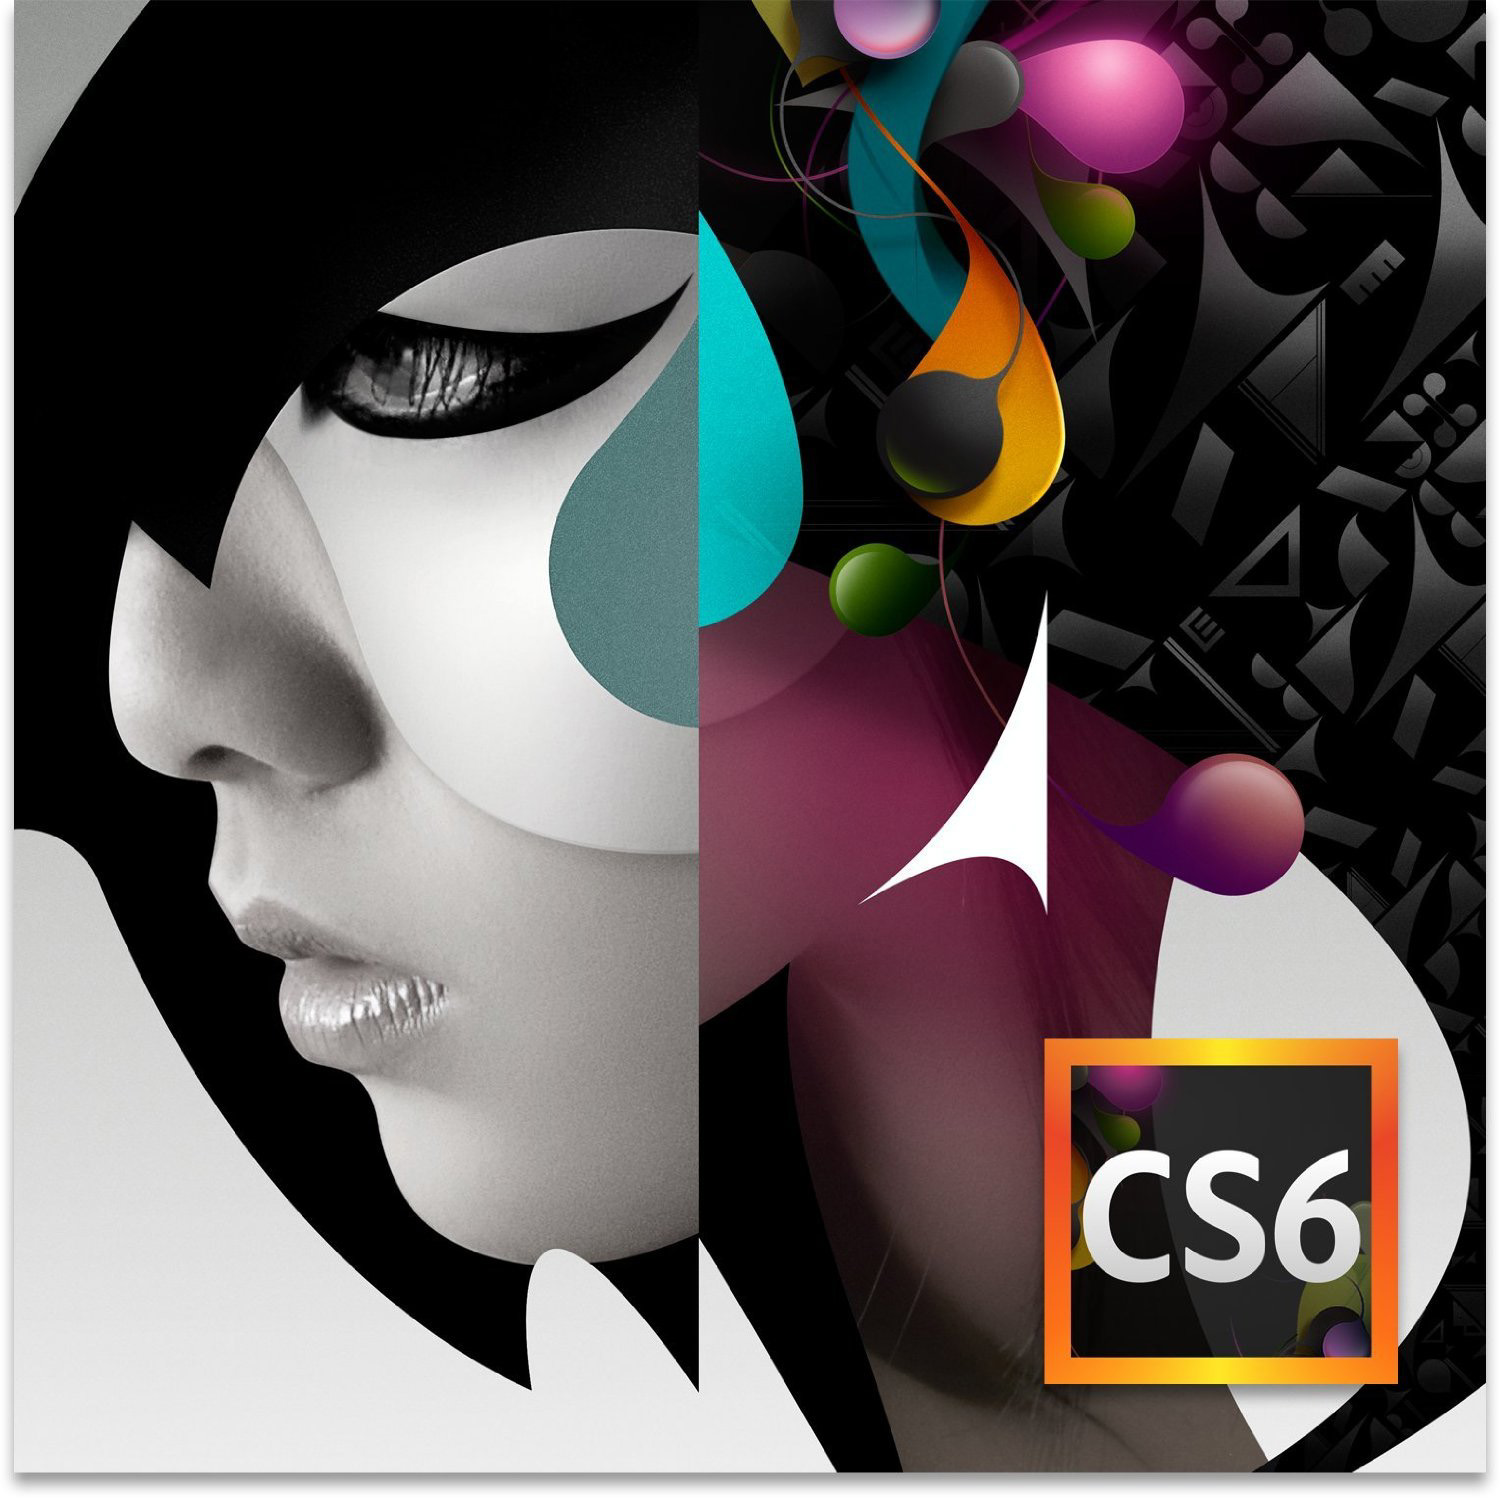 Creative Cloud now includes Creative Suite ... - adobe.com